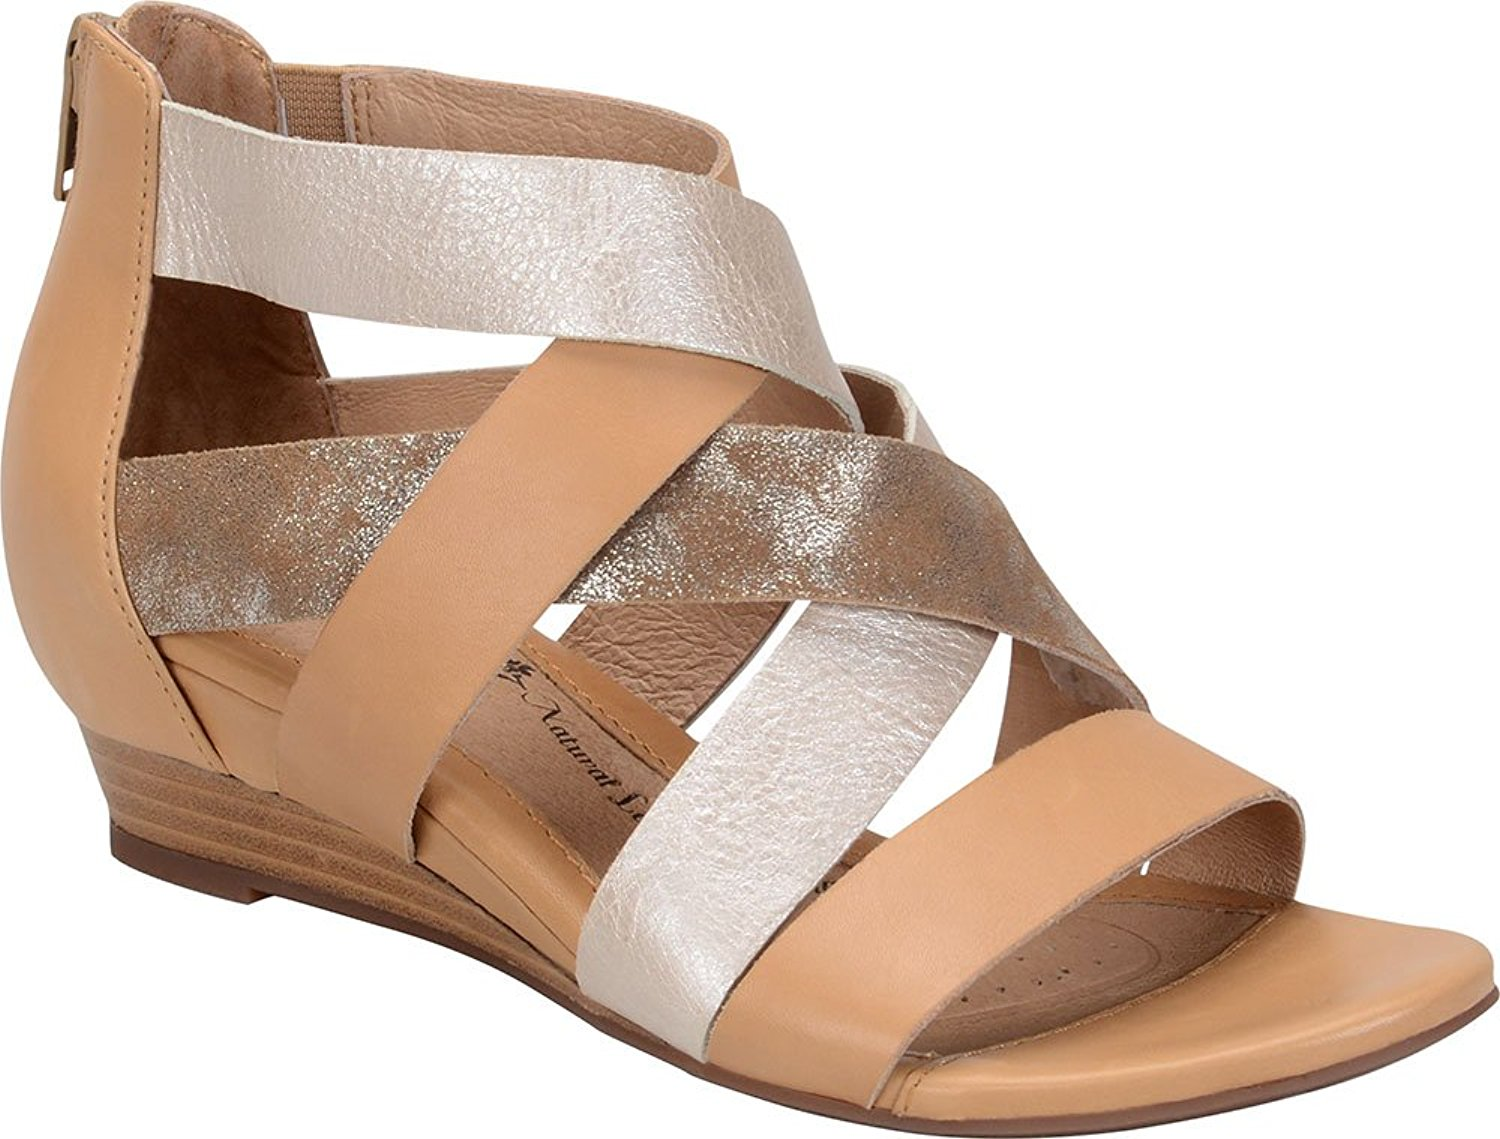 Sofft Womens Rosaria Open Toe Casual Strappy Sandals by Sofft